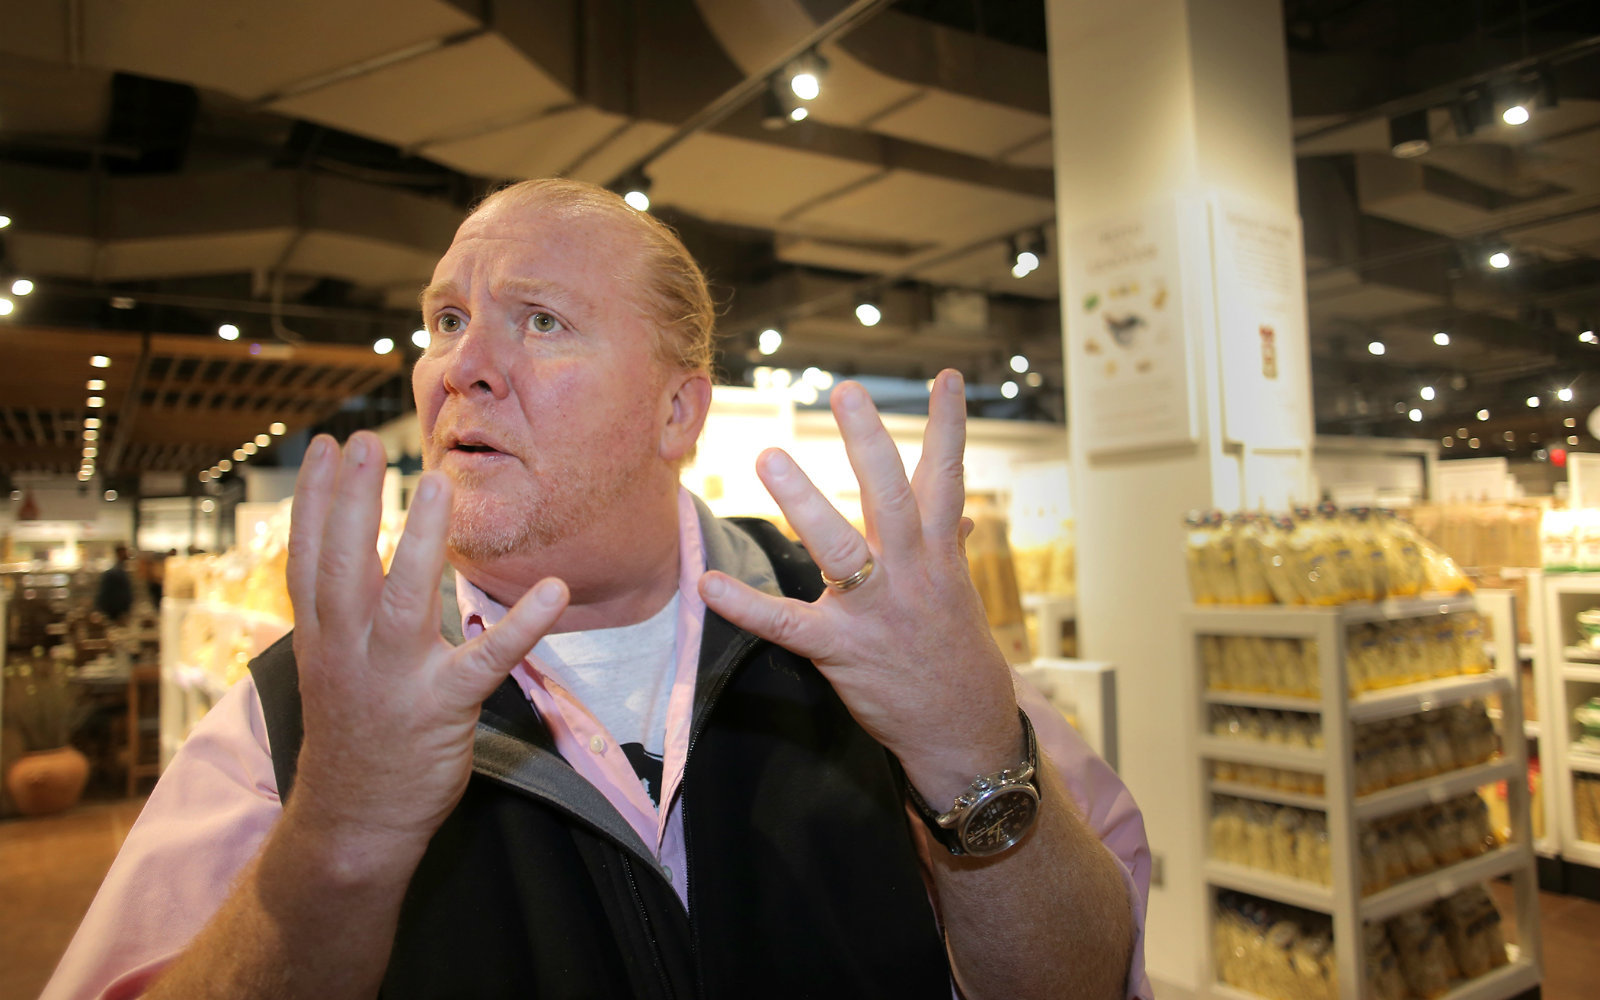 Mario Batali Fired From 'The Chew' After Sexual Misconduct Investigation